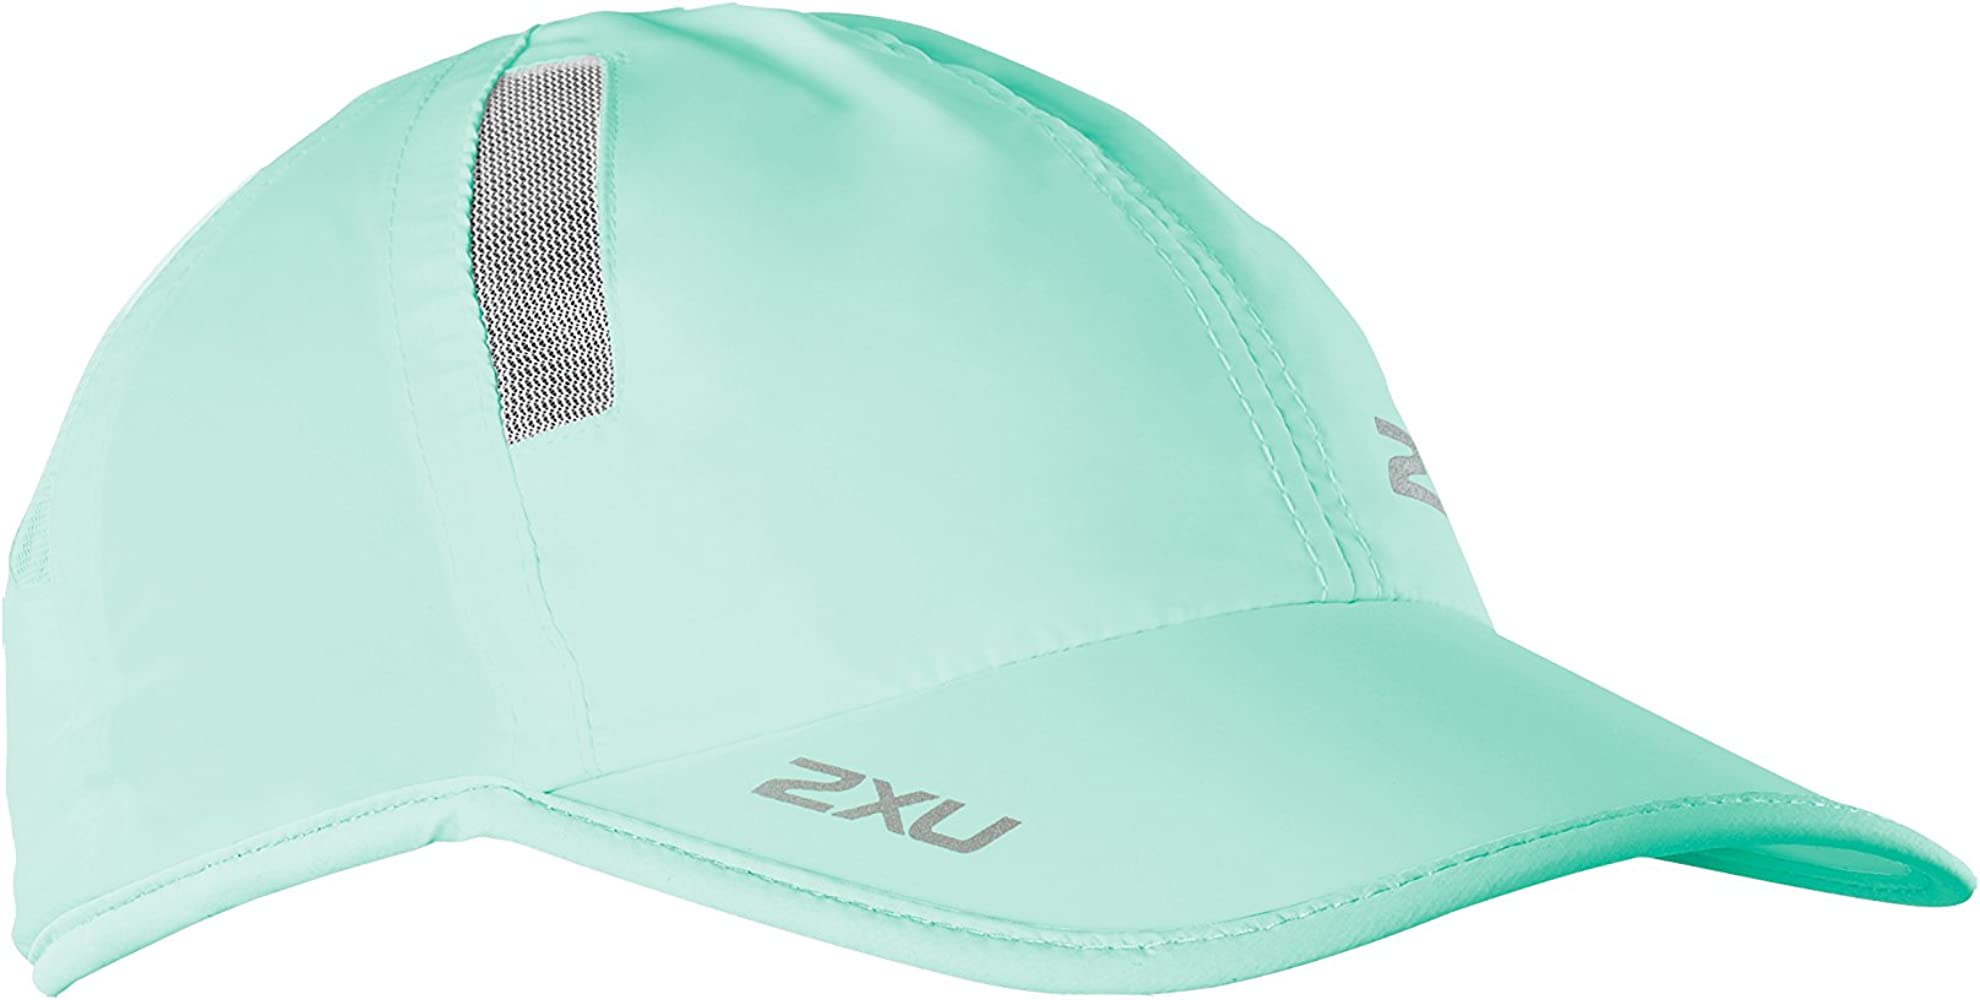 2XU Unisex Trucker Cap Black Sports Outdoors Breathable Lightweight